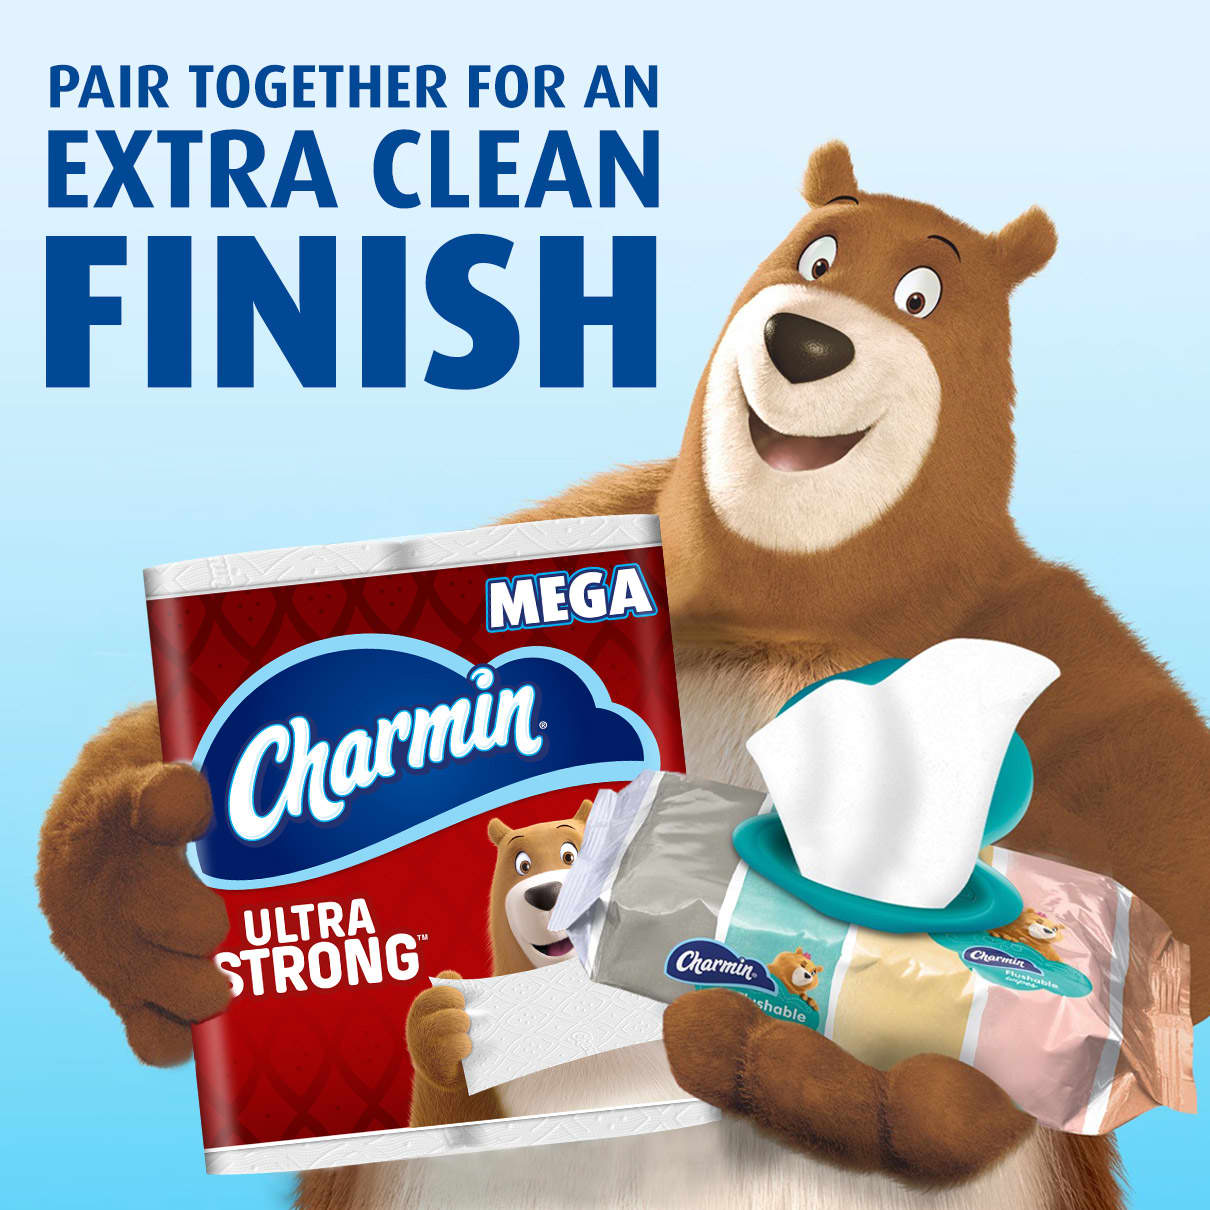 Charmin Flushable Wipes and toilet paper clean better together